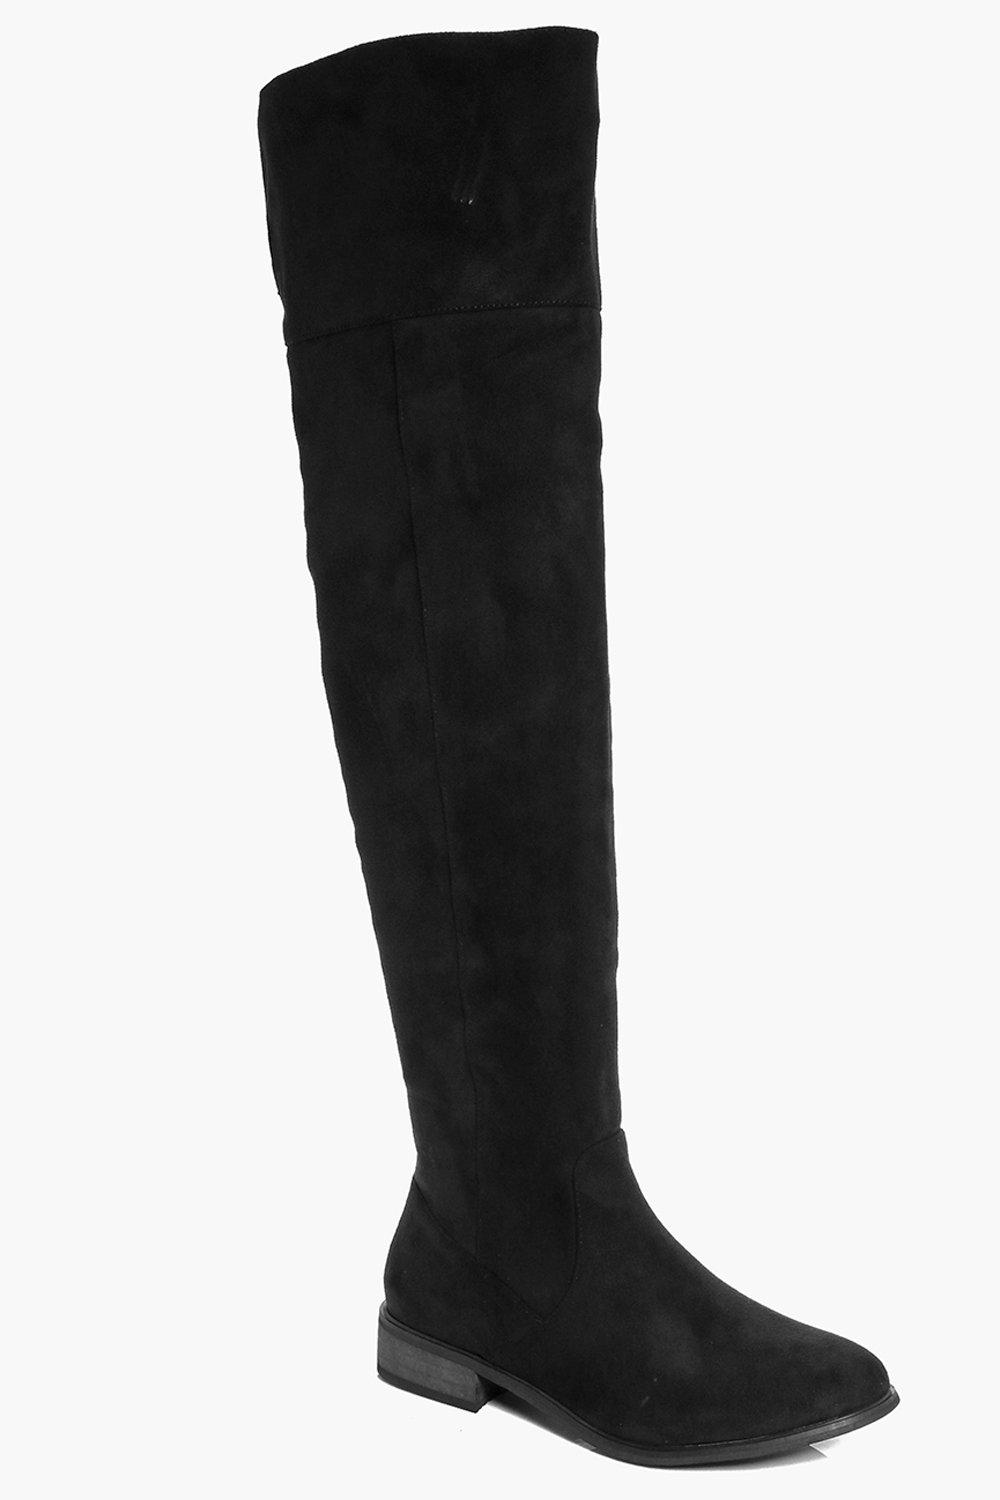 Annabelle Over The Knee Flat Boot | Boohoo